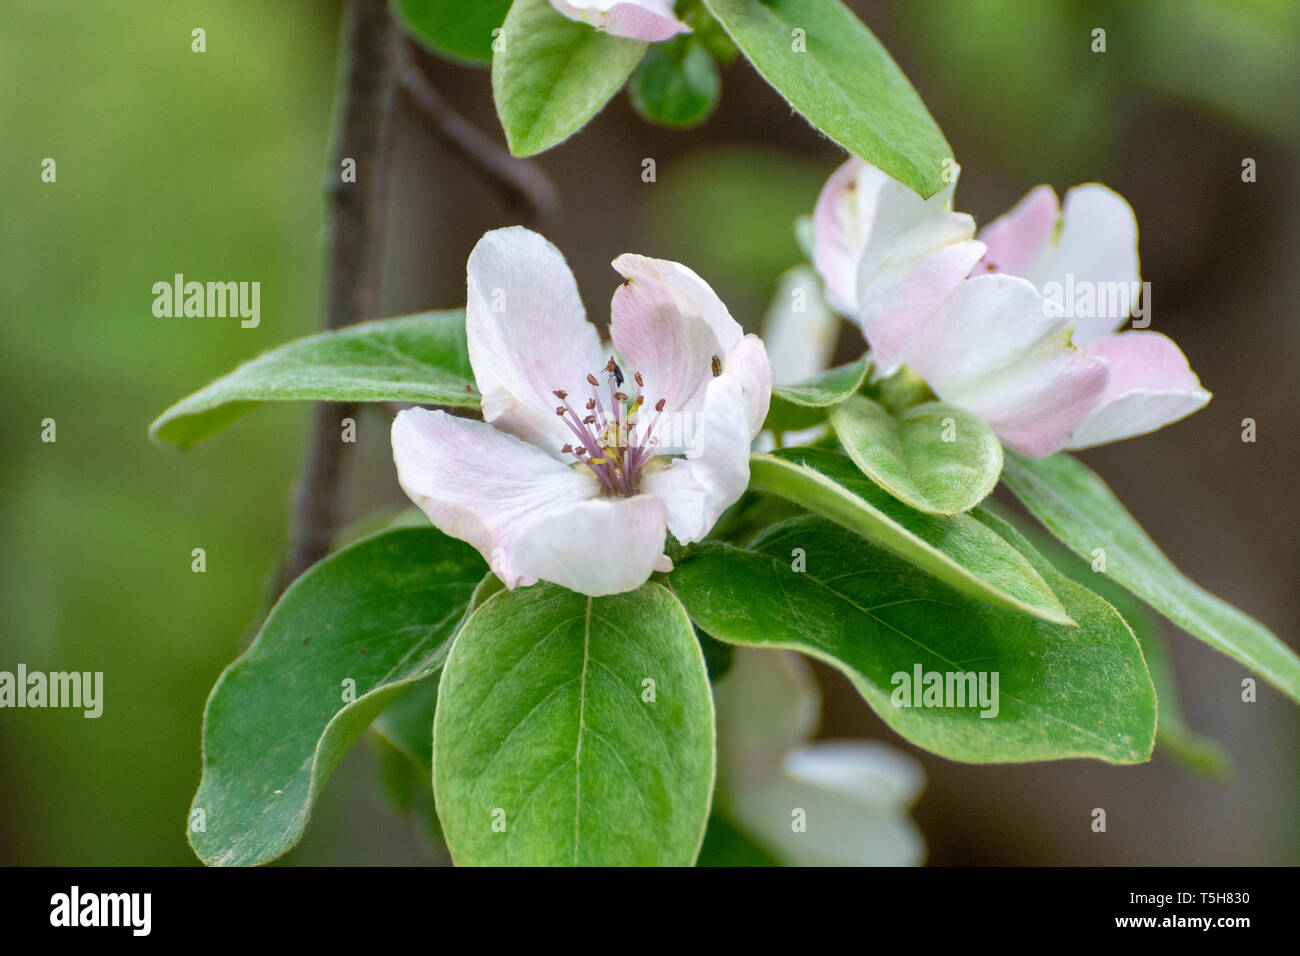 Pink flowers of apple tree, spring blossom on fruit orchard close up Stock Photo